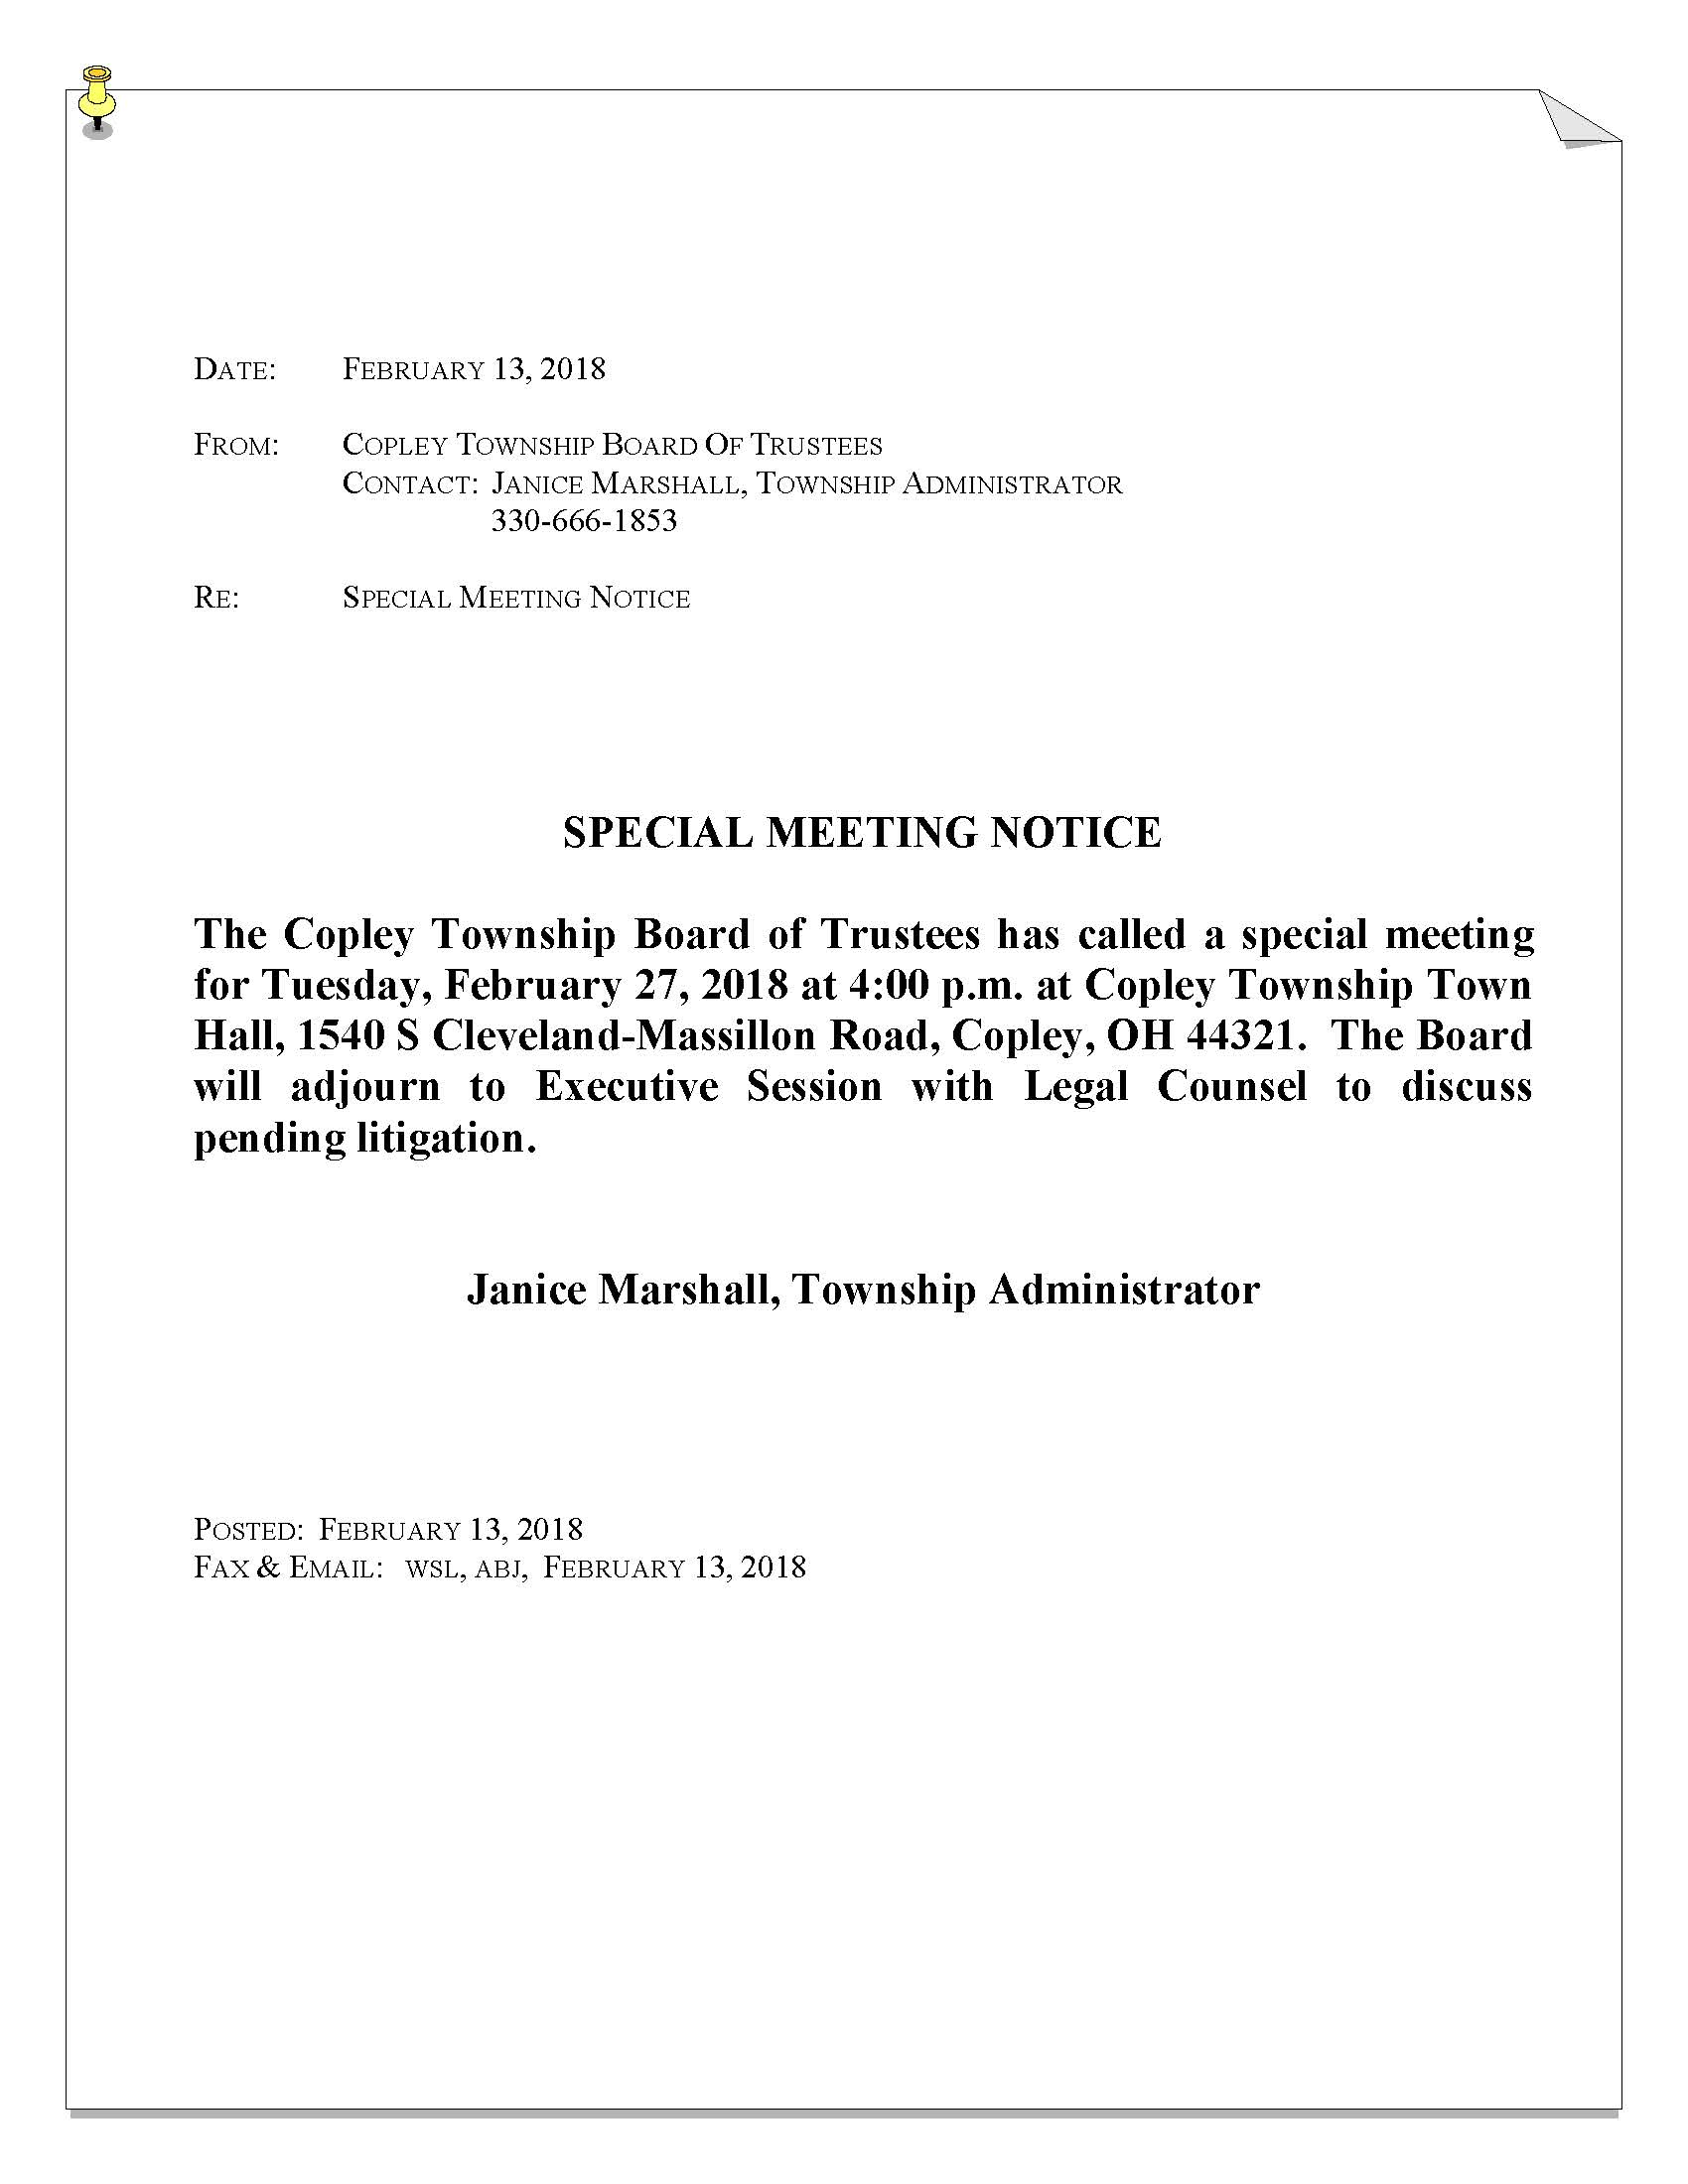 Special Meeting Notice 2-27-2018